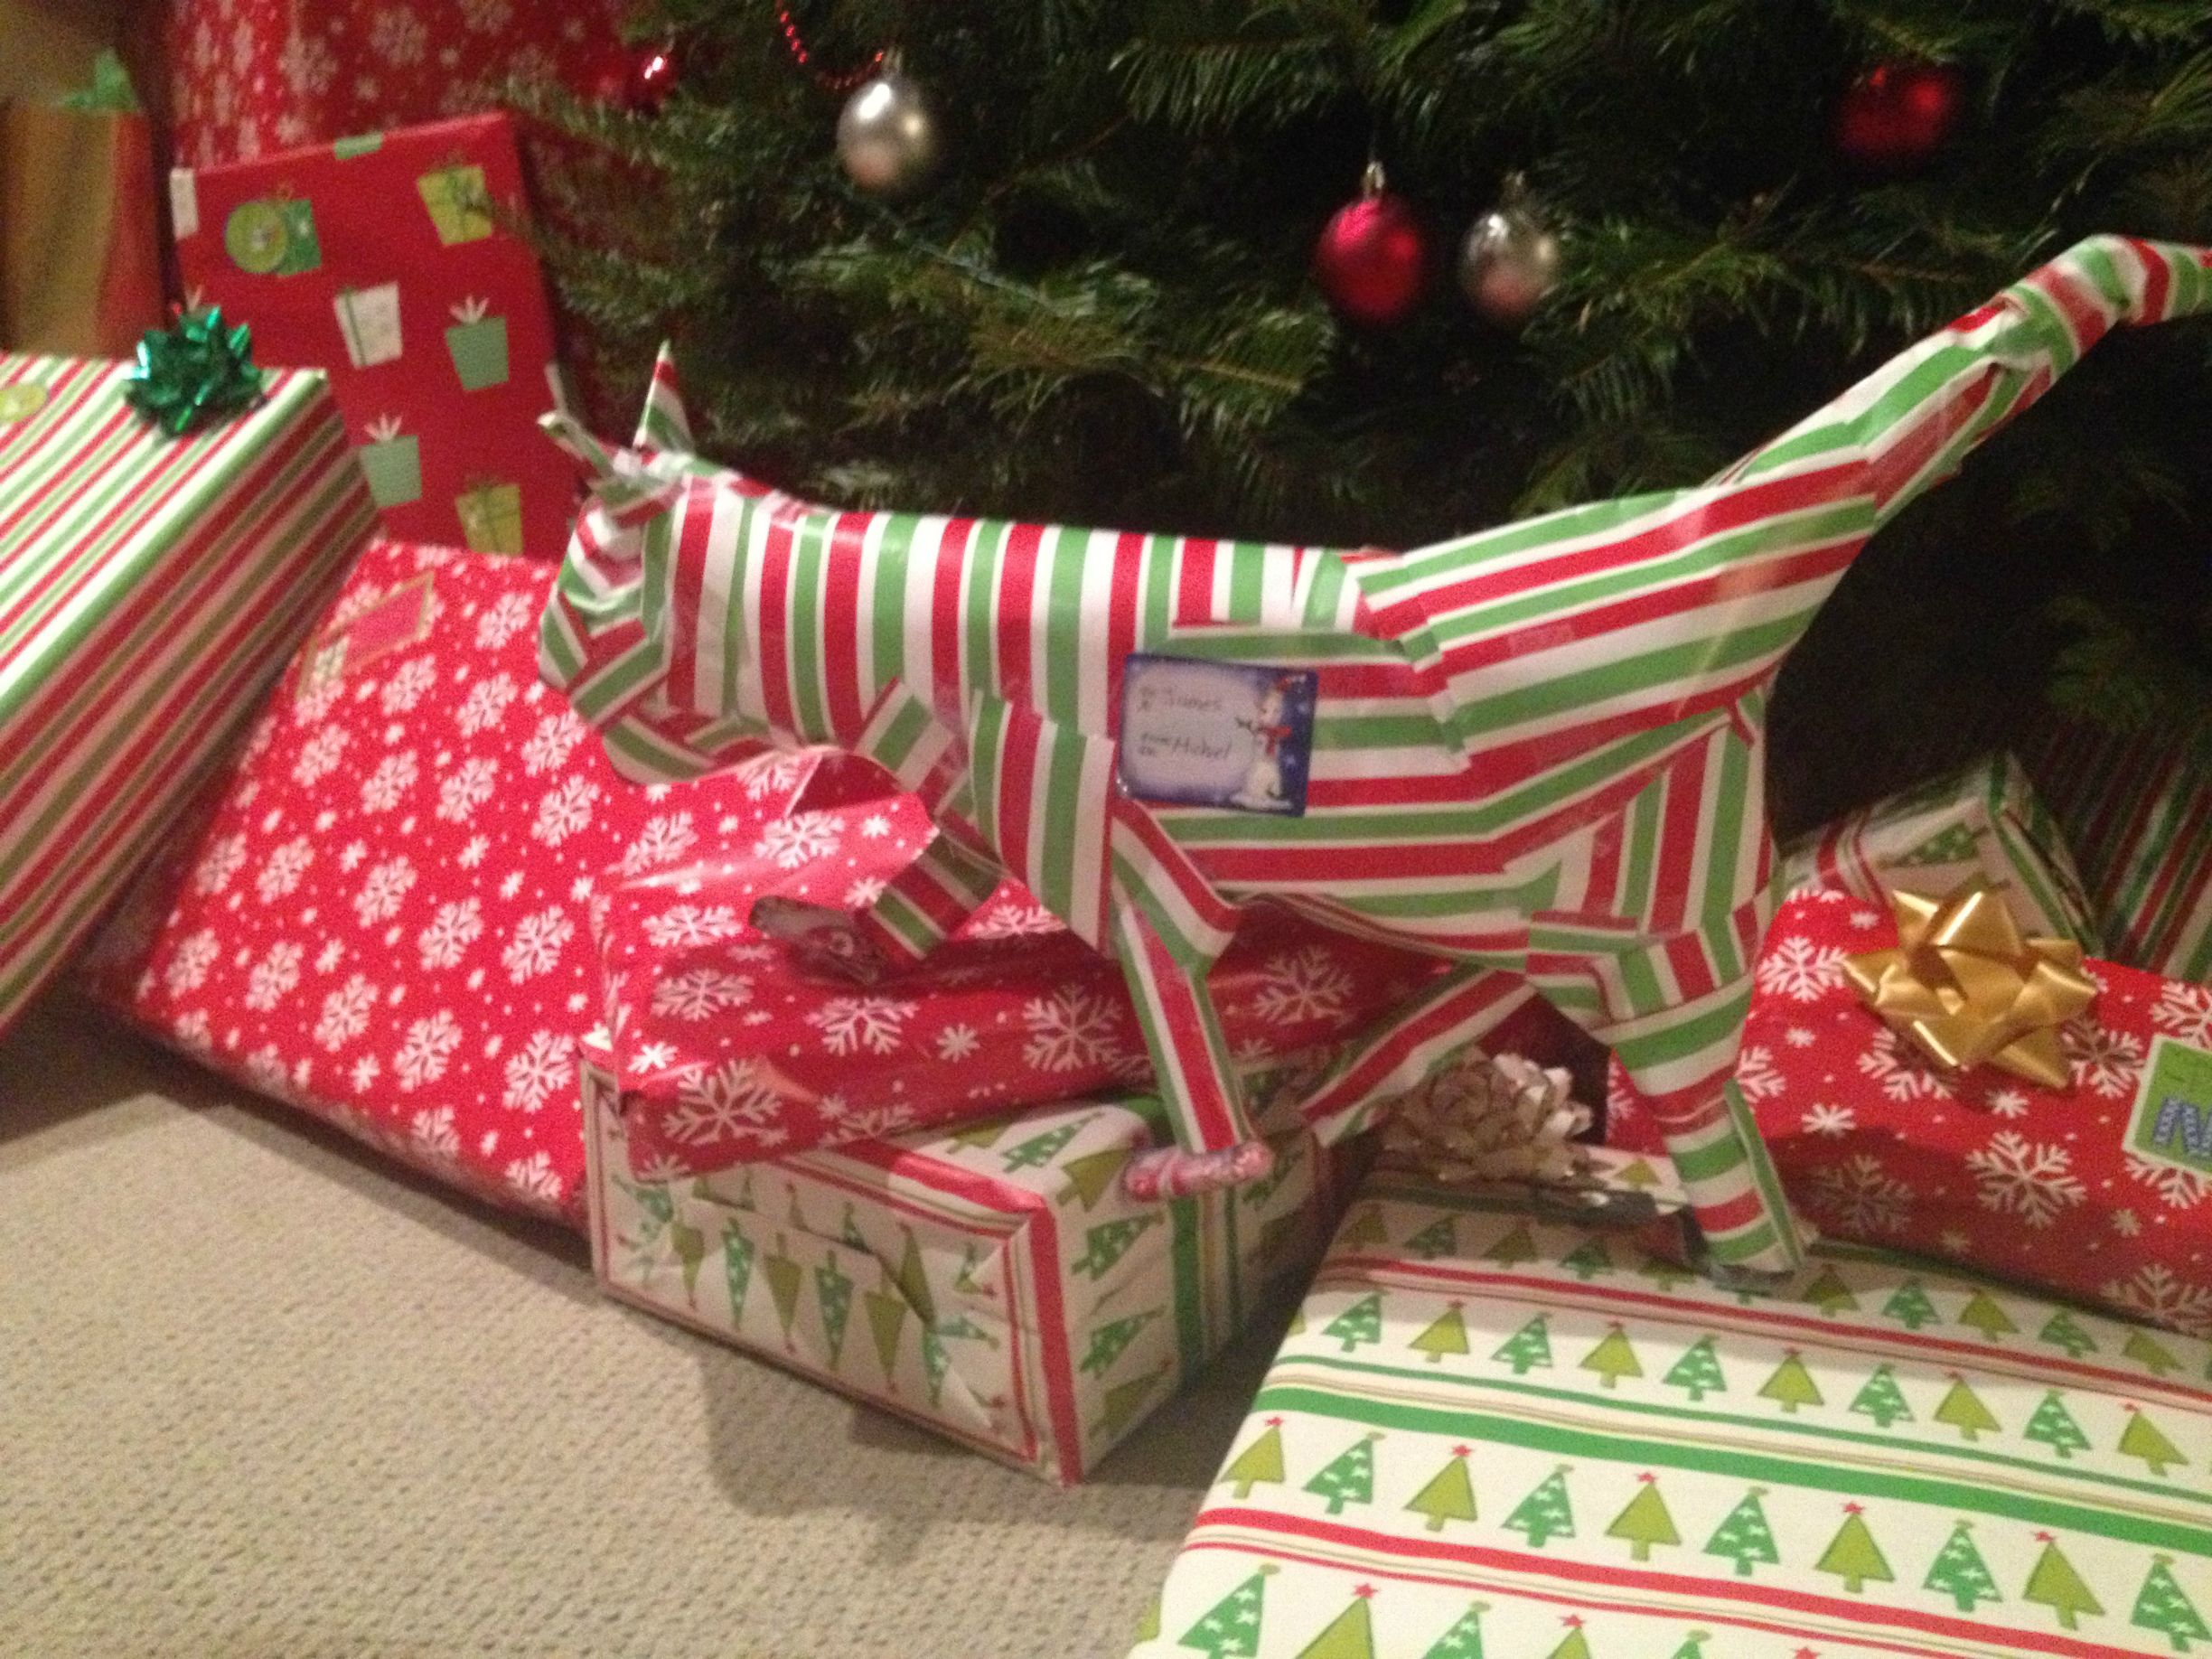 Wrapping Gift Card into a Cat and More Ourageous Gift Wrapping Ideas